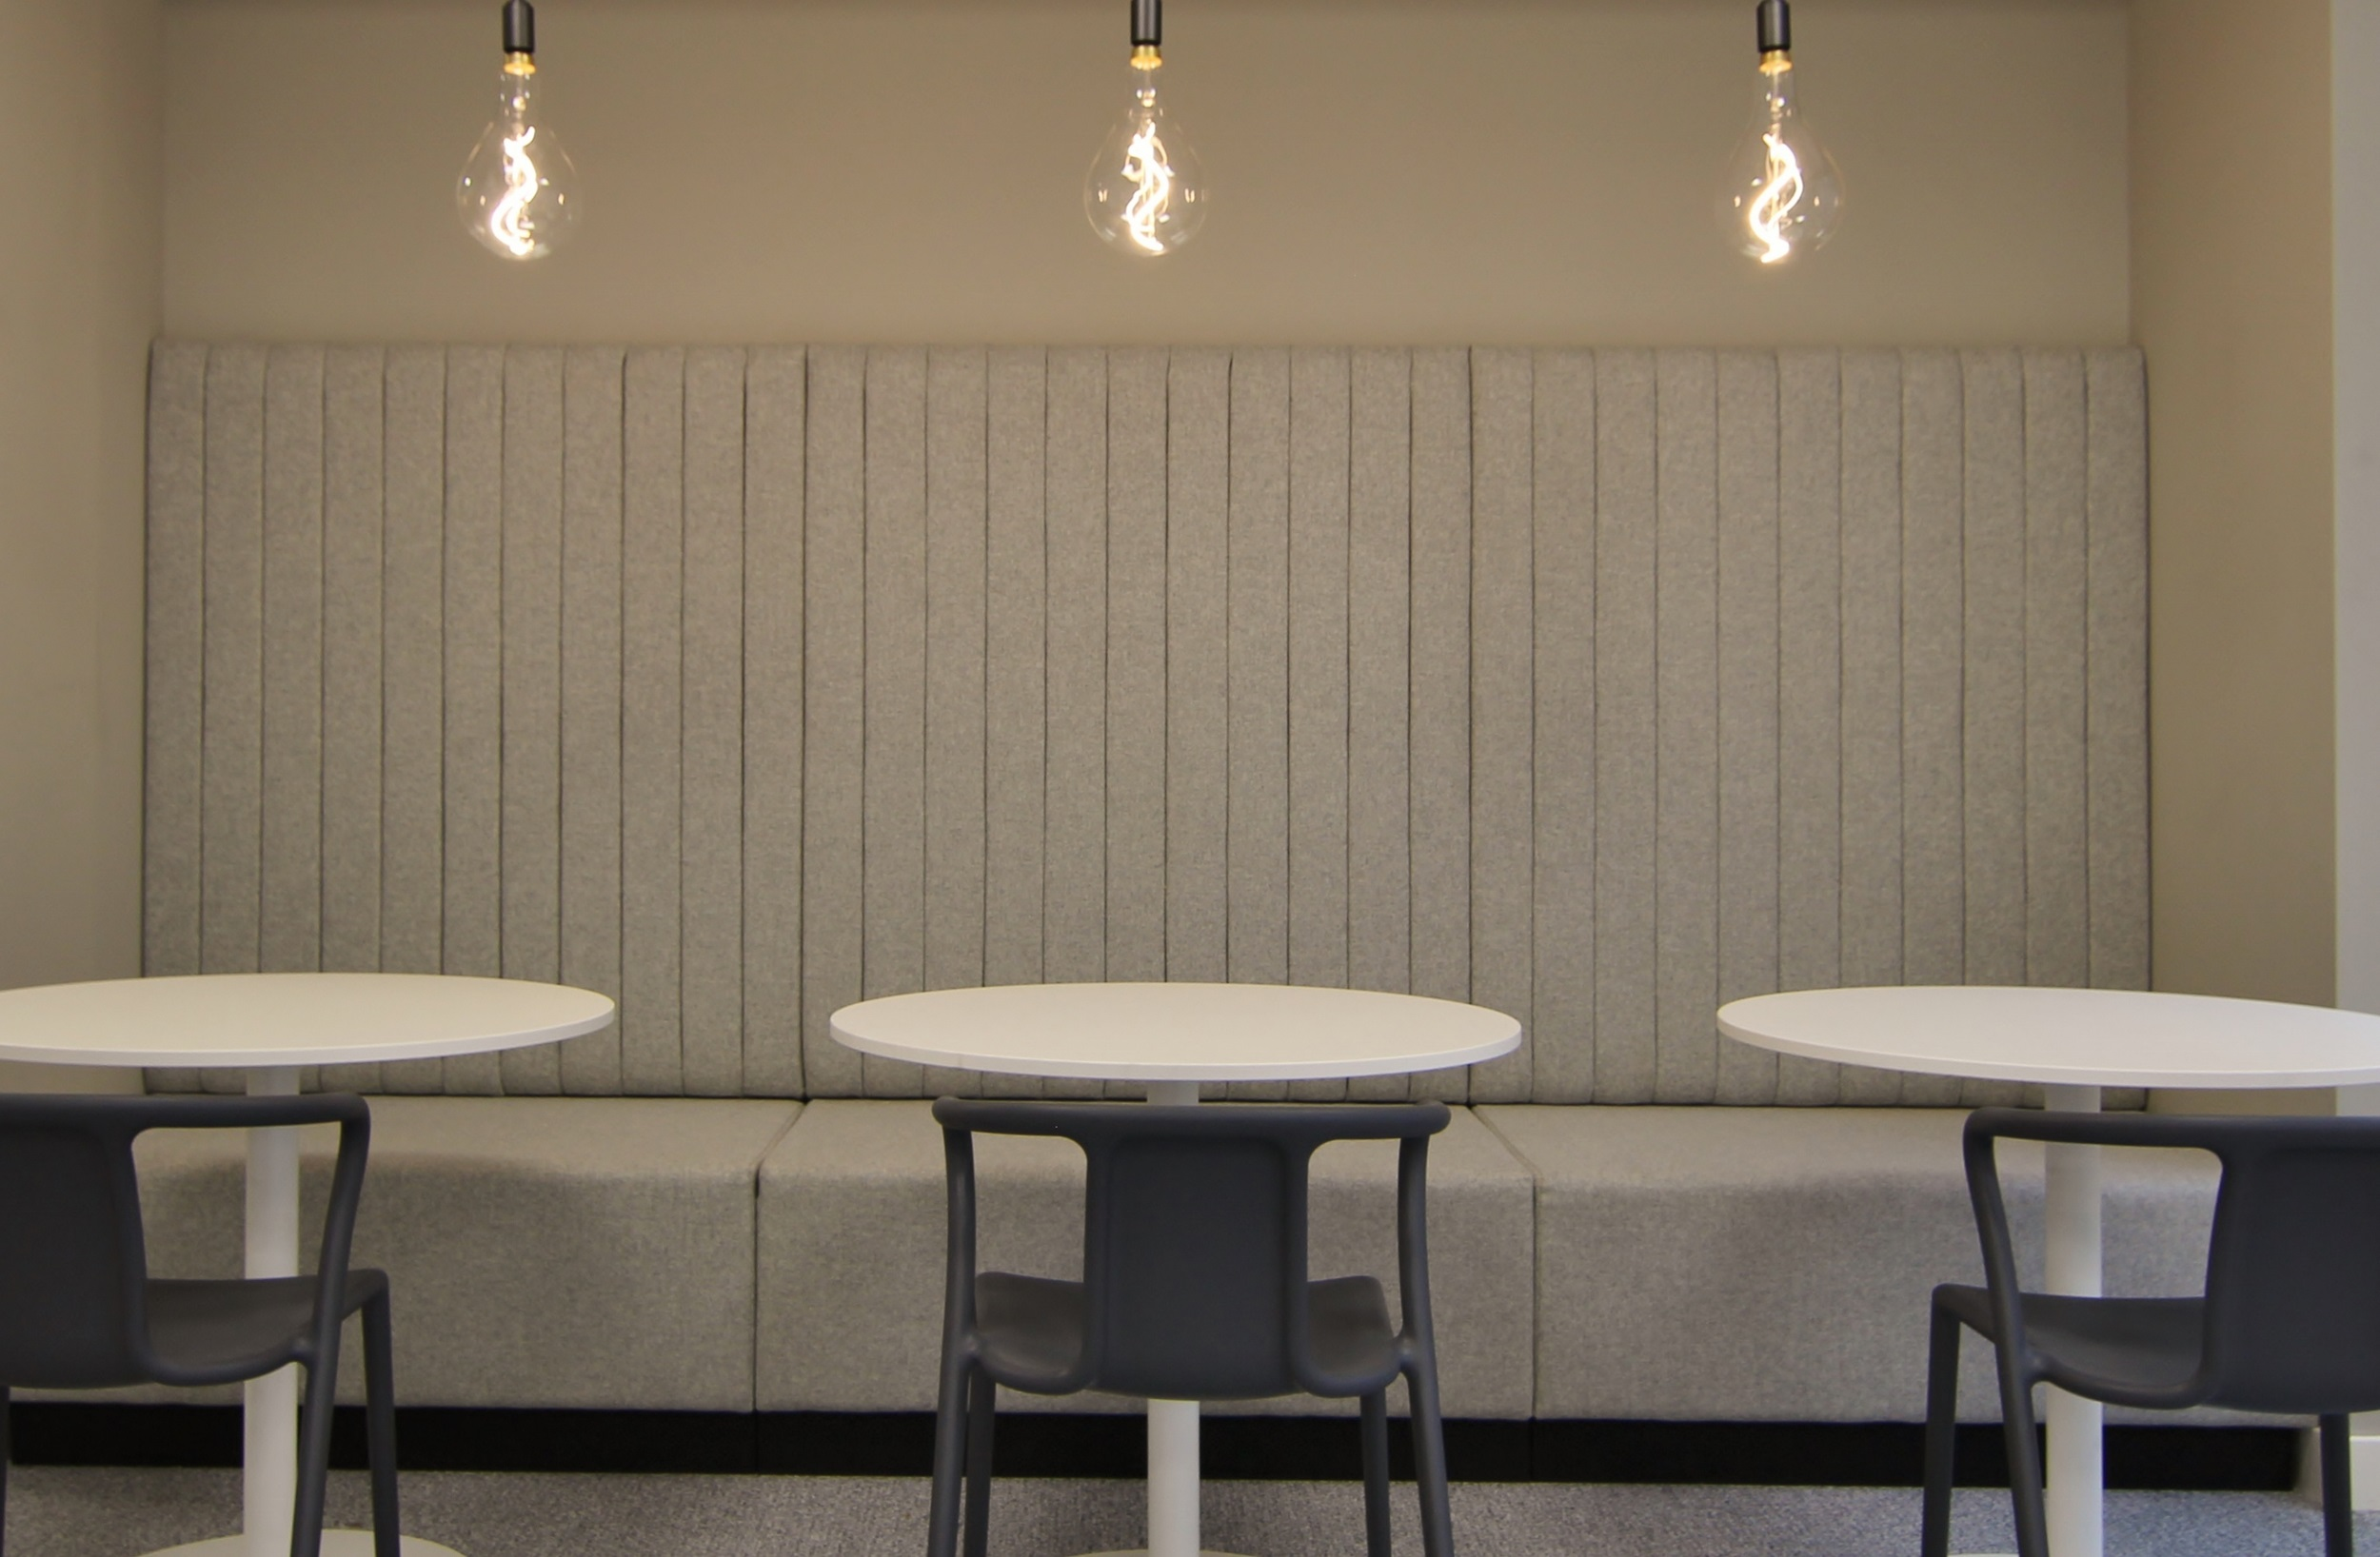 three large light bulbs hanging above three tables and chairs